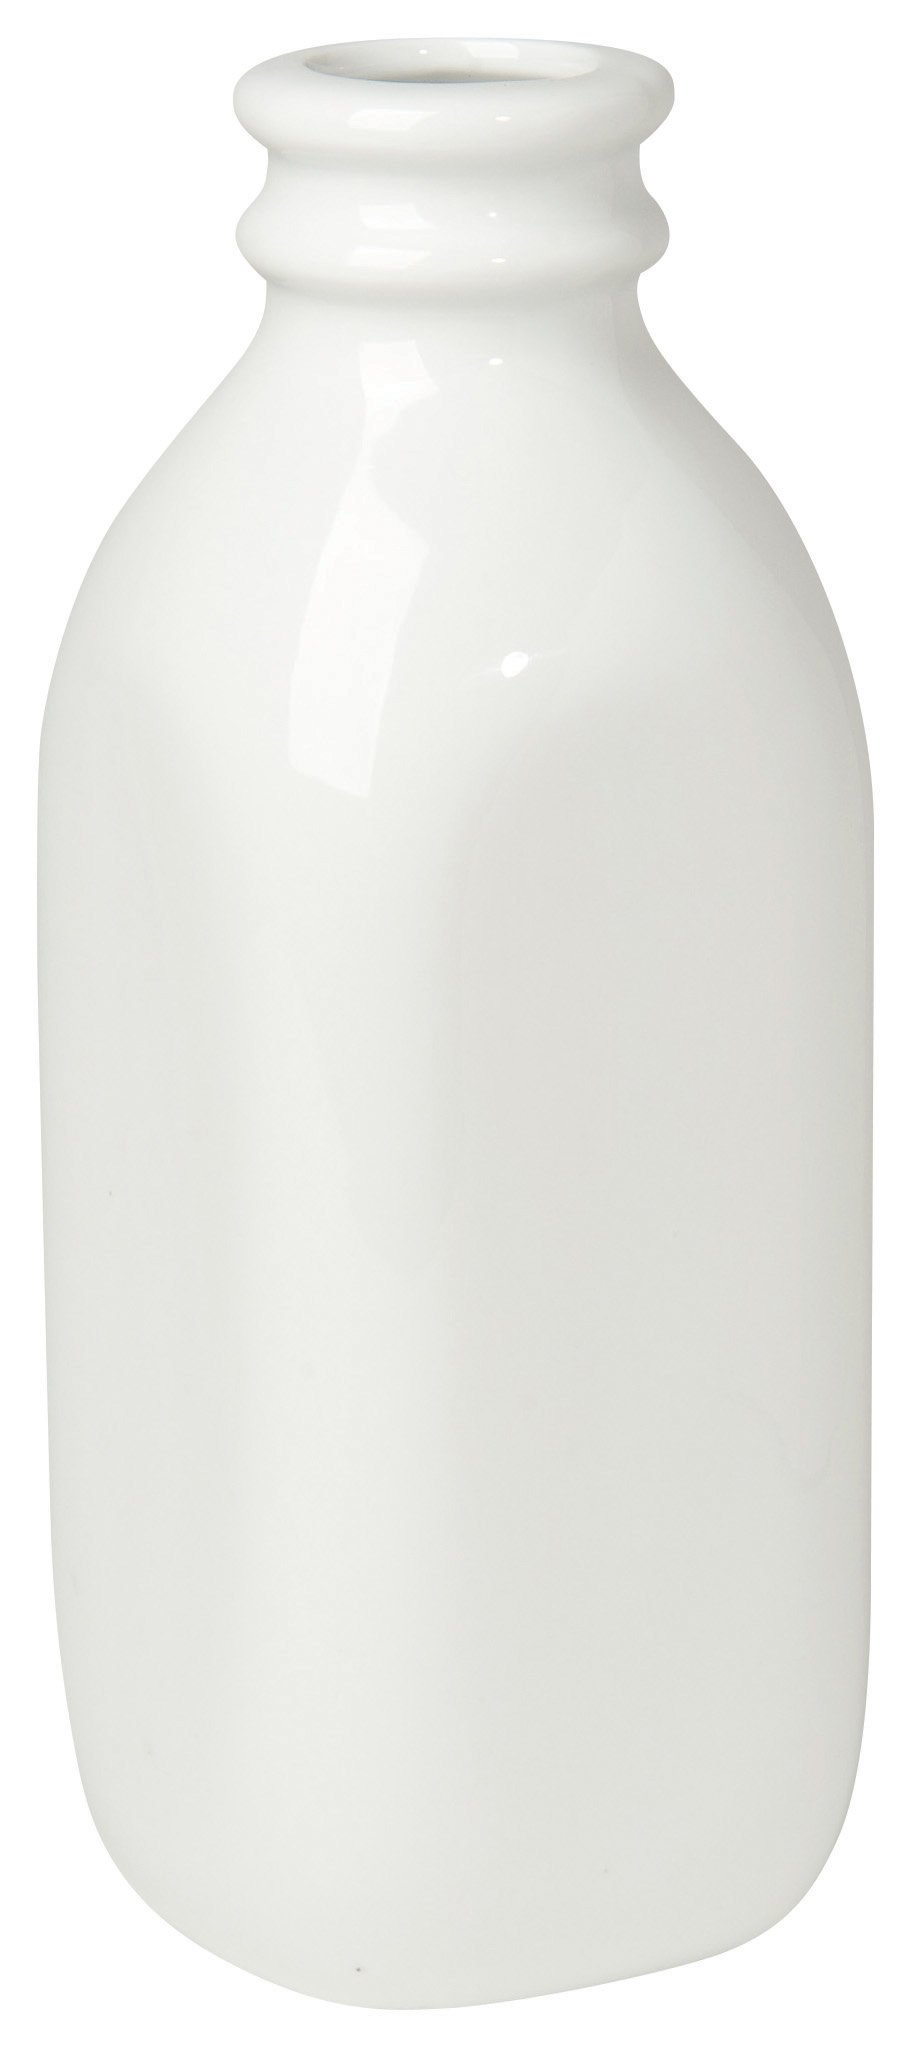 Now Designs Ceramic Milk Bottle, Large, White - This larger milk bottle measures 9 inches tall, 3 inches diameter and hold 30 ounces. (Matching smaller bottle sold separately) This retro- inspired bottle is made from durable ceramic Perfect for serving milk or cream with tea and coffee - vases, kitchen-dining-room-decor, kitchen-dining-room - 61g0sAF9OsL -